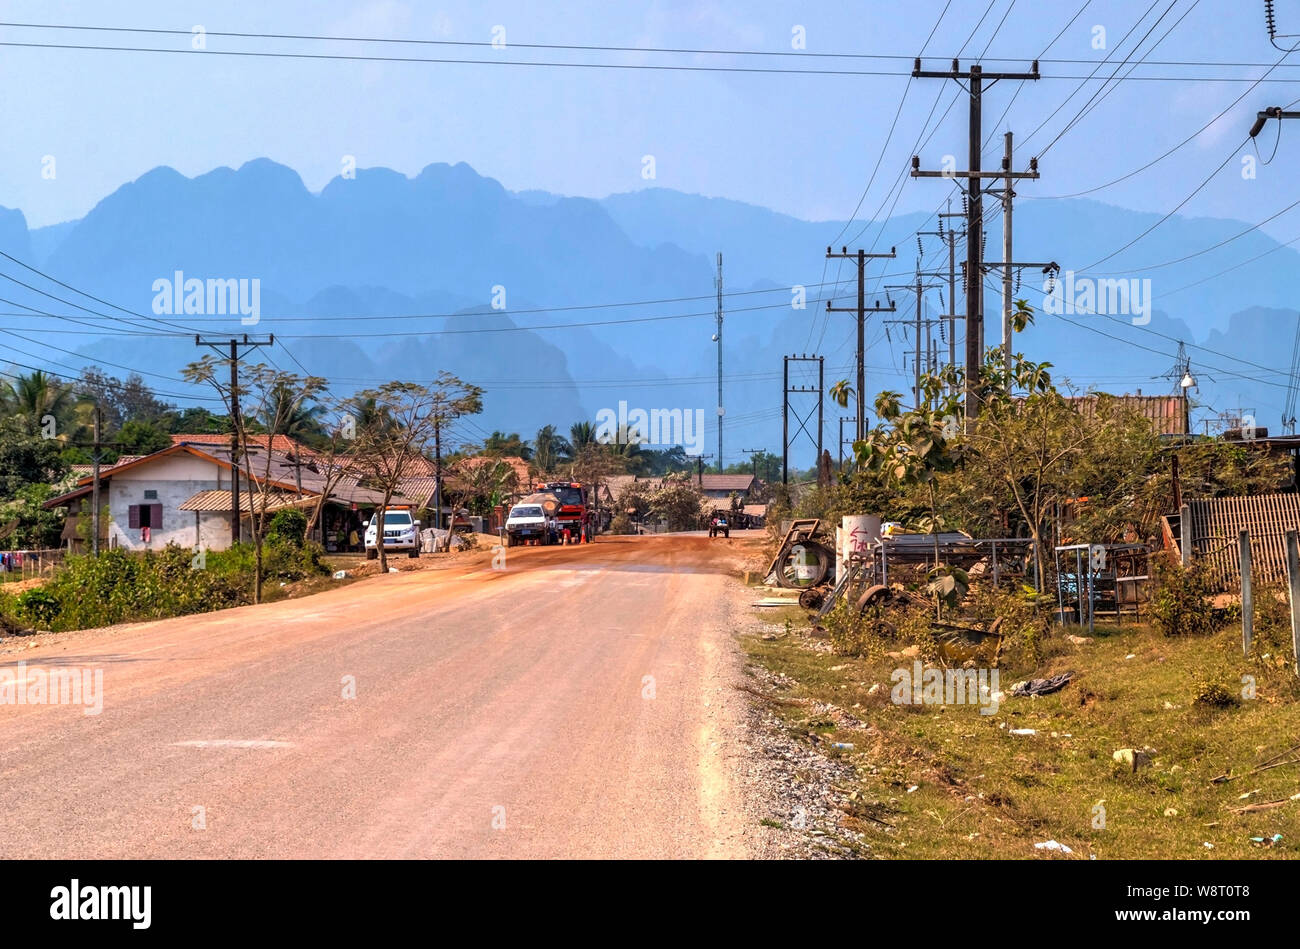 Driving thru laotian village and scenic hills in the horizon Stock Photo